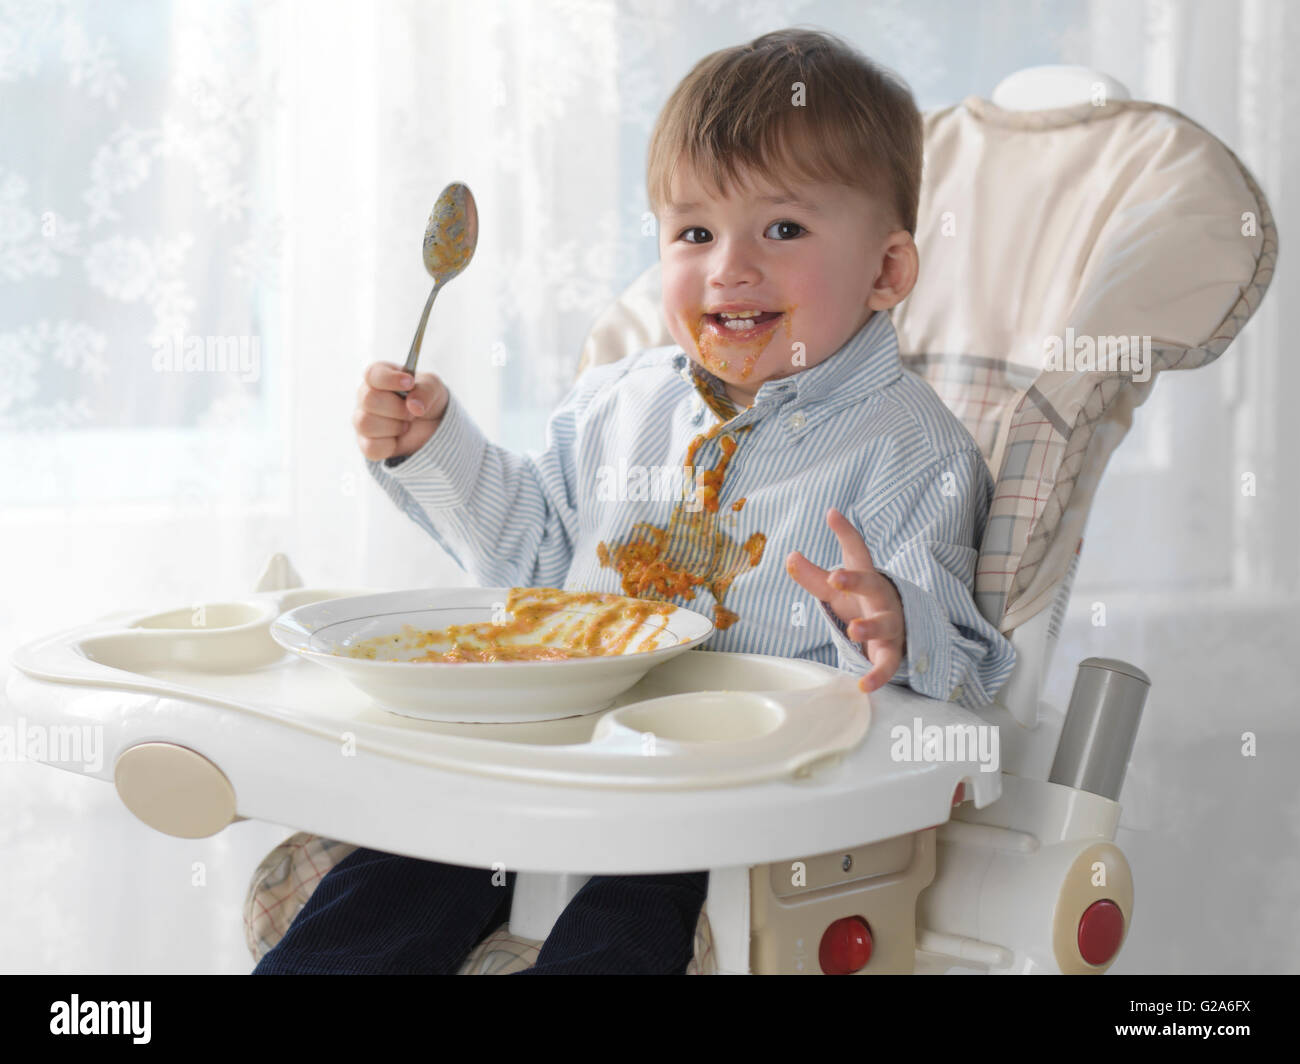 Toddler boy sitting in a high chair eating soup with a for Toddler sitting chair